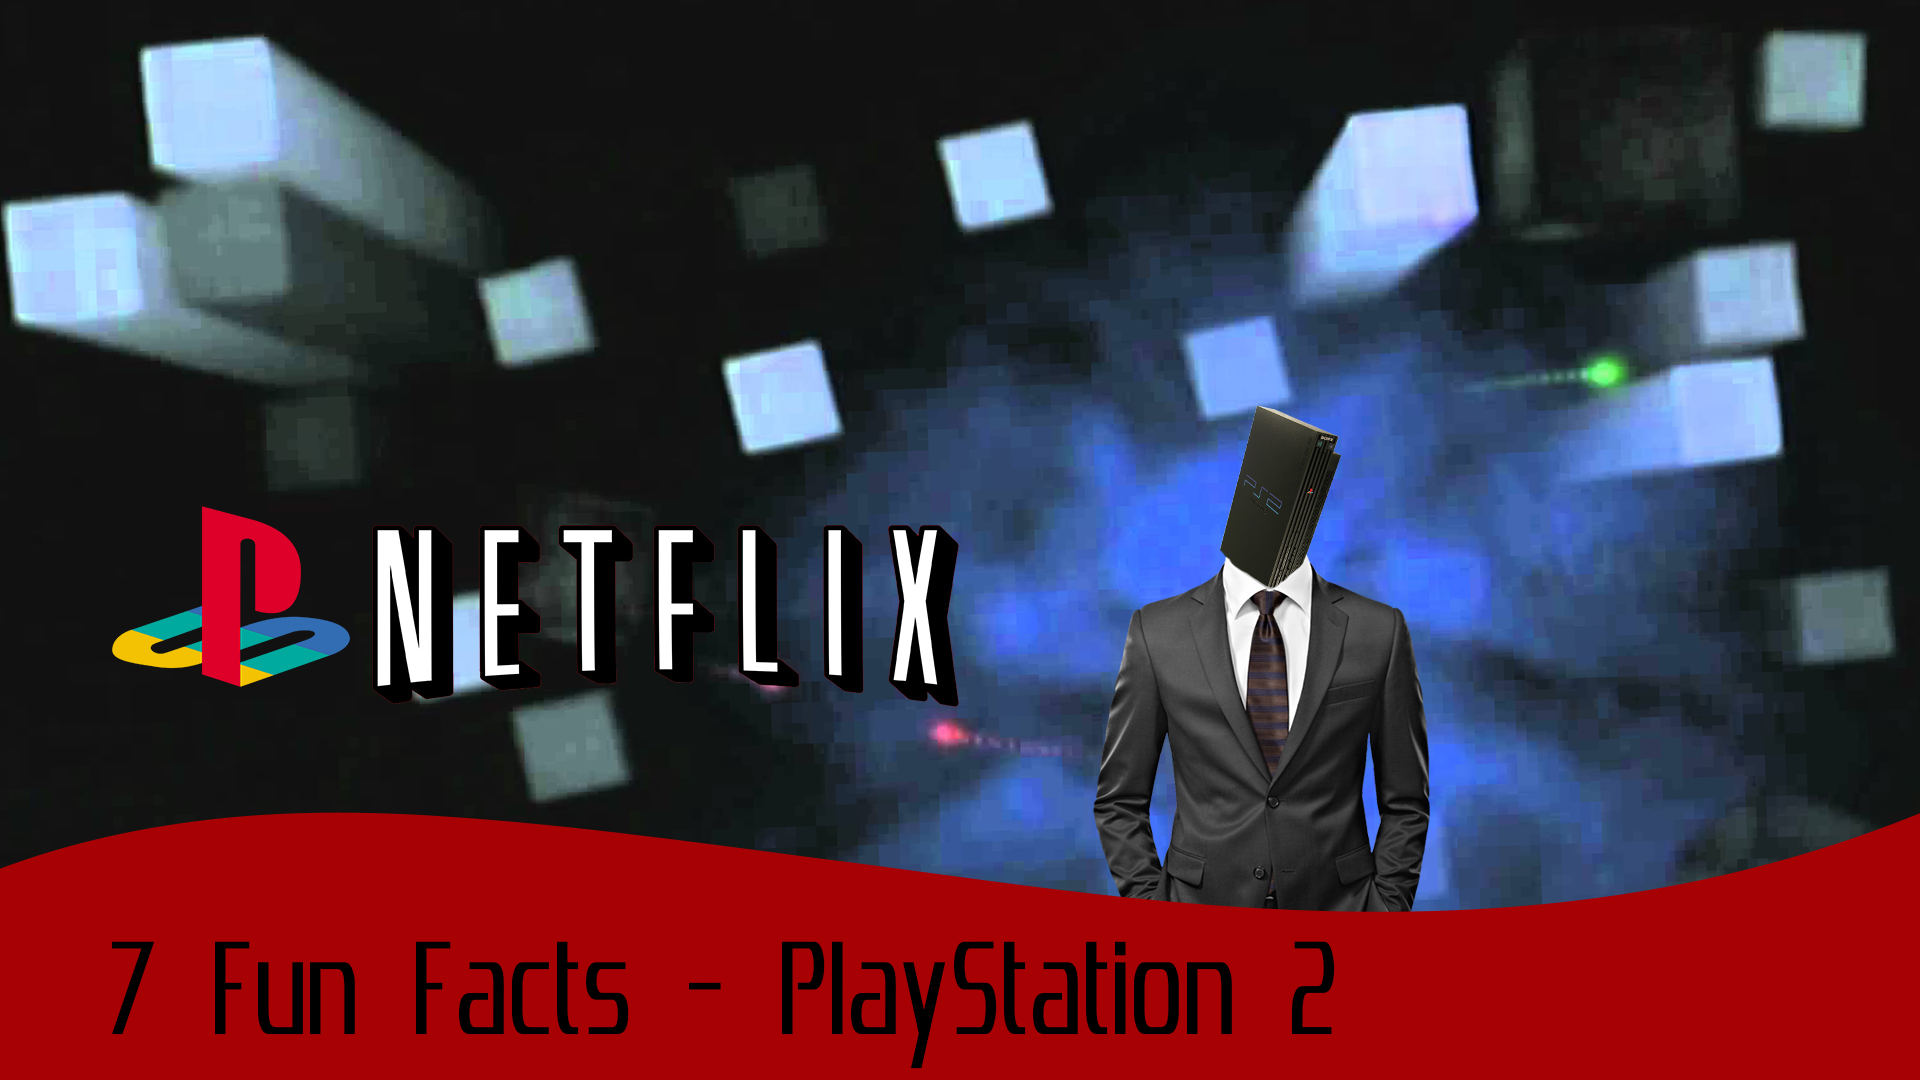 7 fun facts playstation 2 banner image